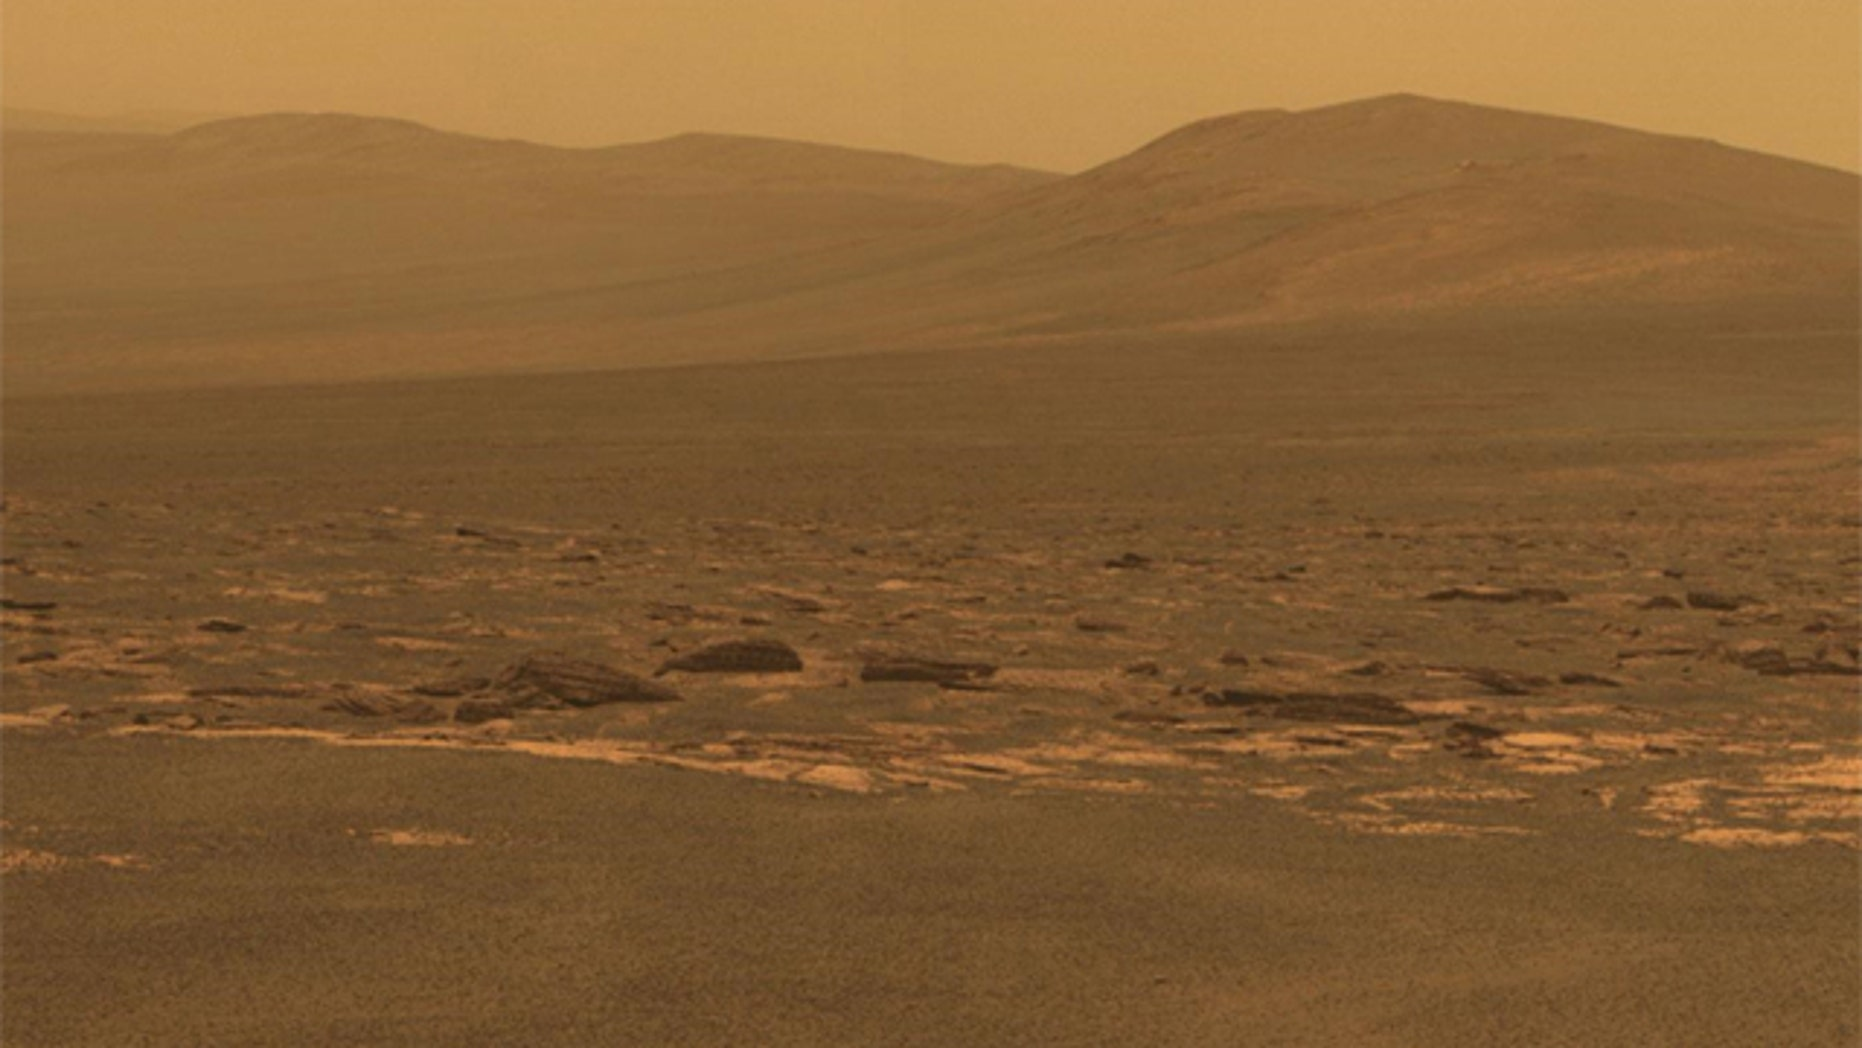 A portion of the west rim of Endeavour crater sweeps southward in this color view from NASA's Mars Exploration Rover Opportunity.